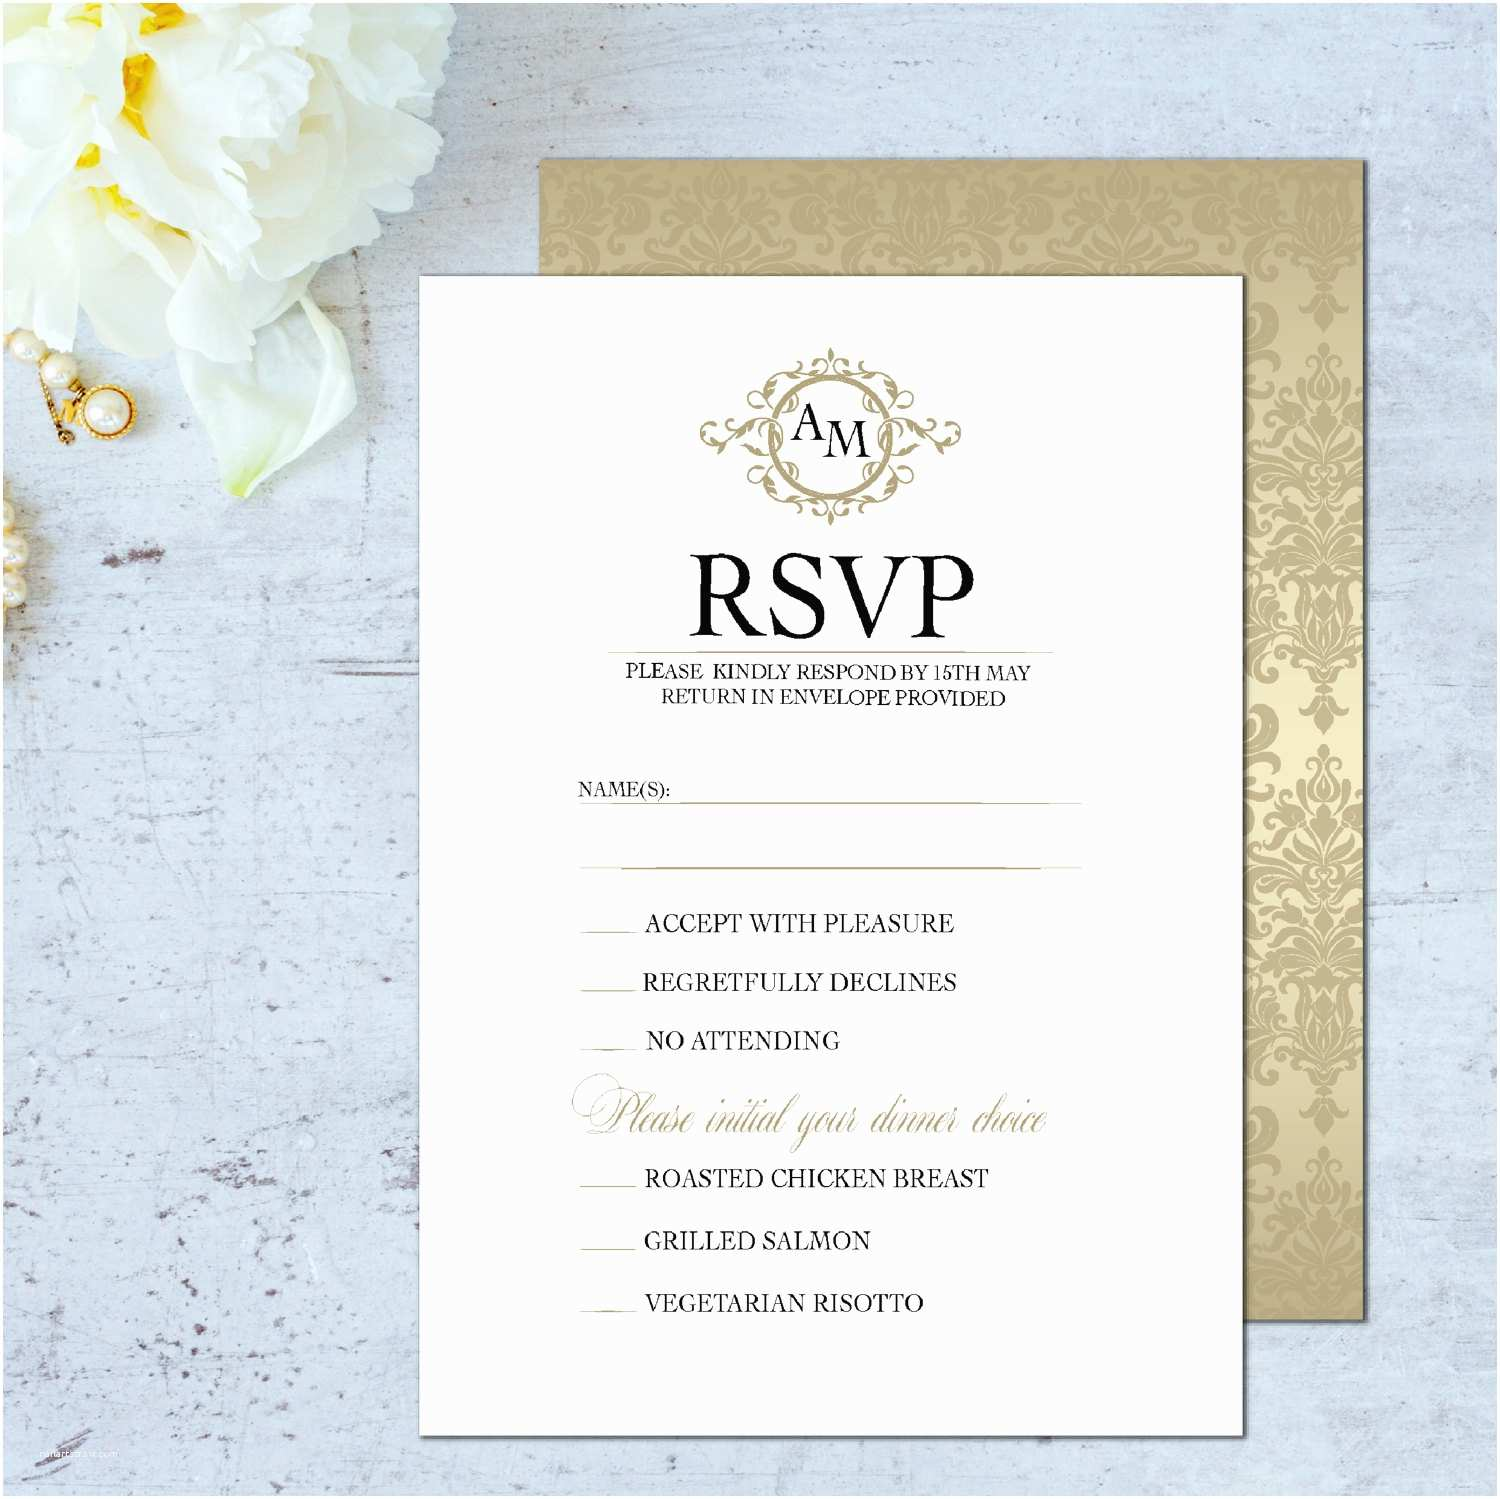 Wedding Invitations and Response Cards All In One Wedding Rsvp Card Wedding Rsvp Cards Classic Rsvp Cards